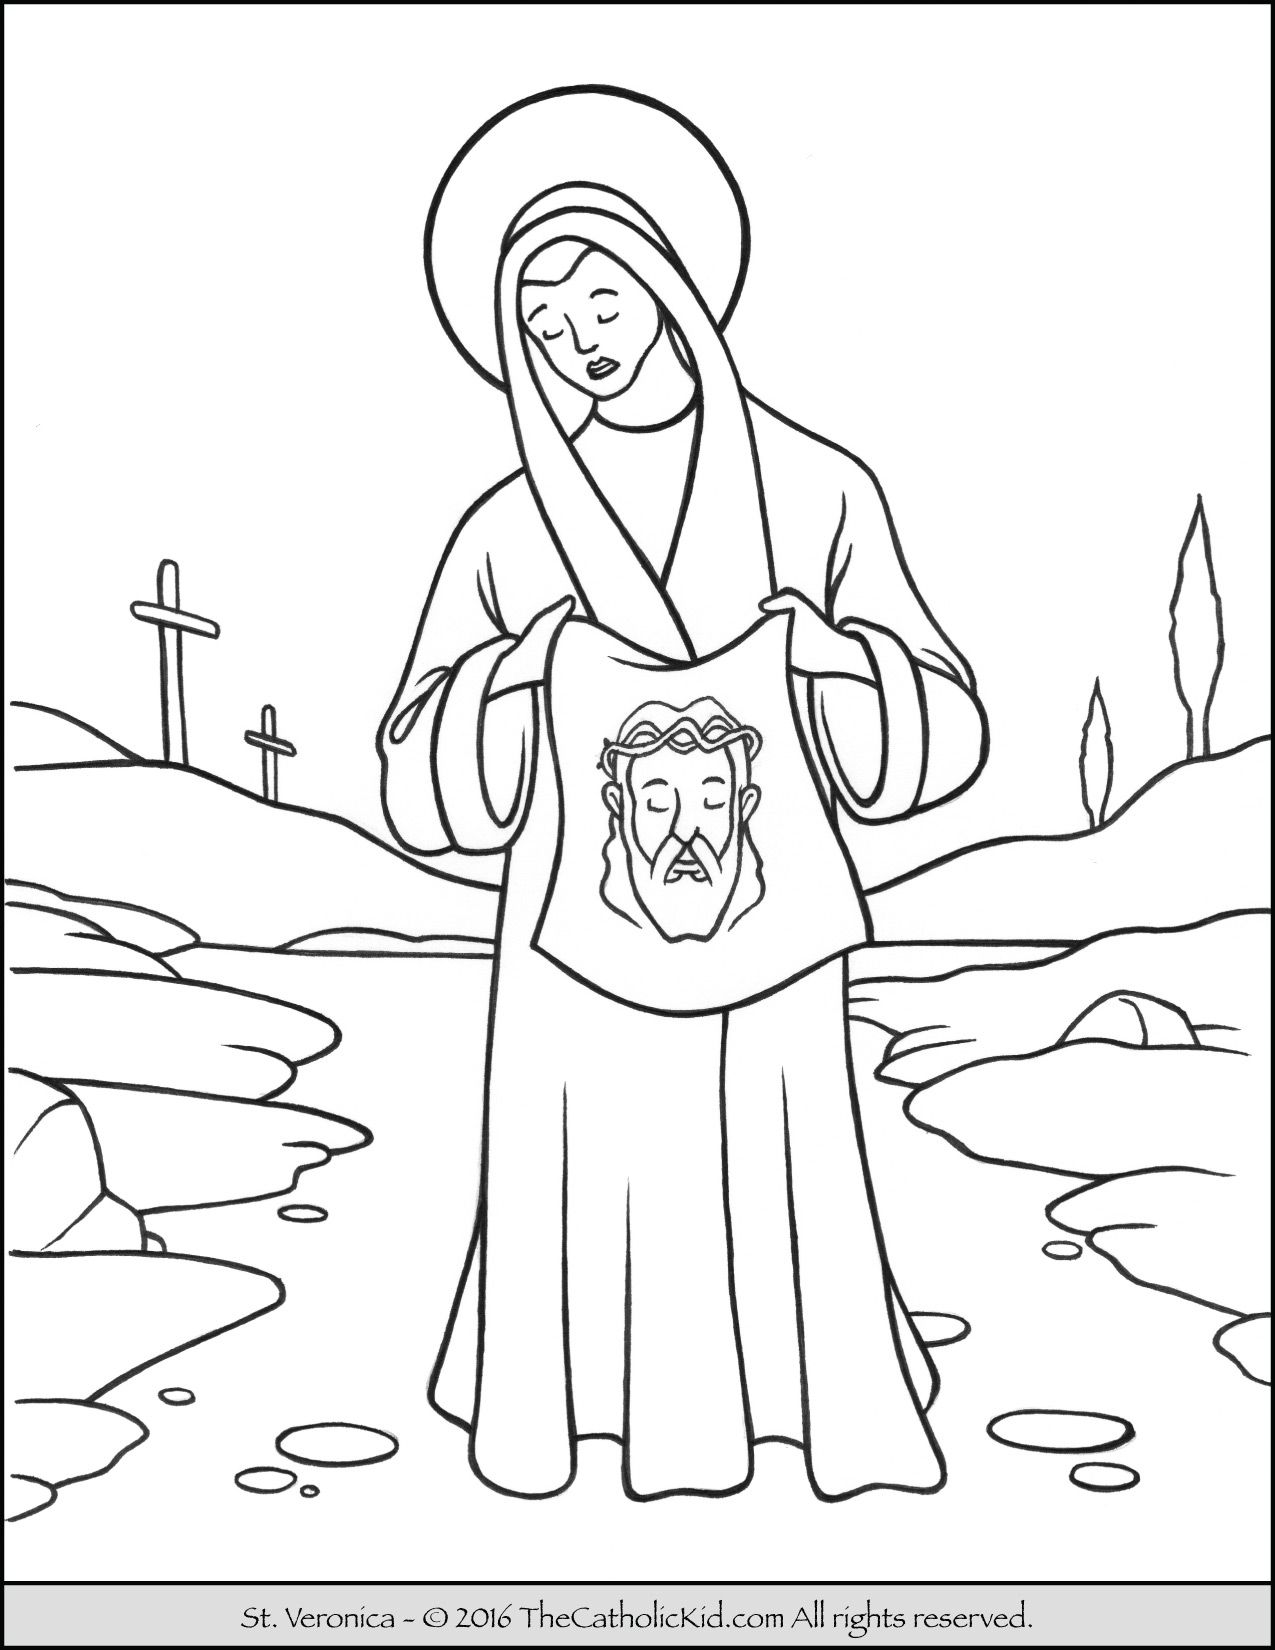 coloring saints pages for kids - photo#36